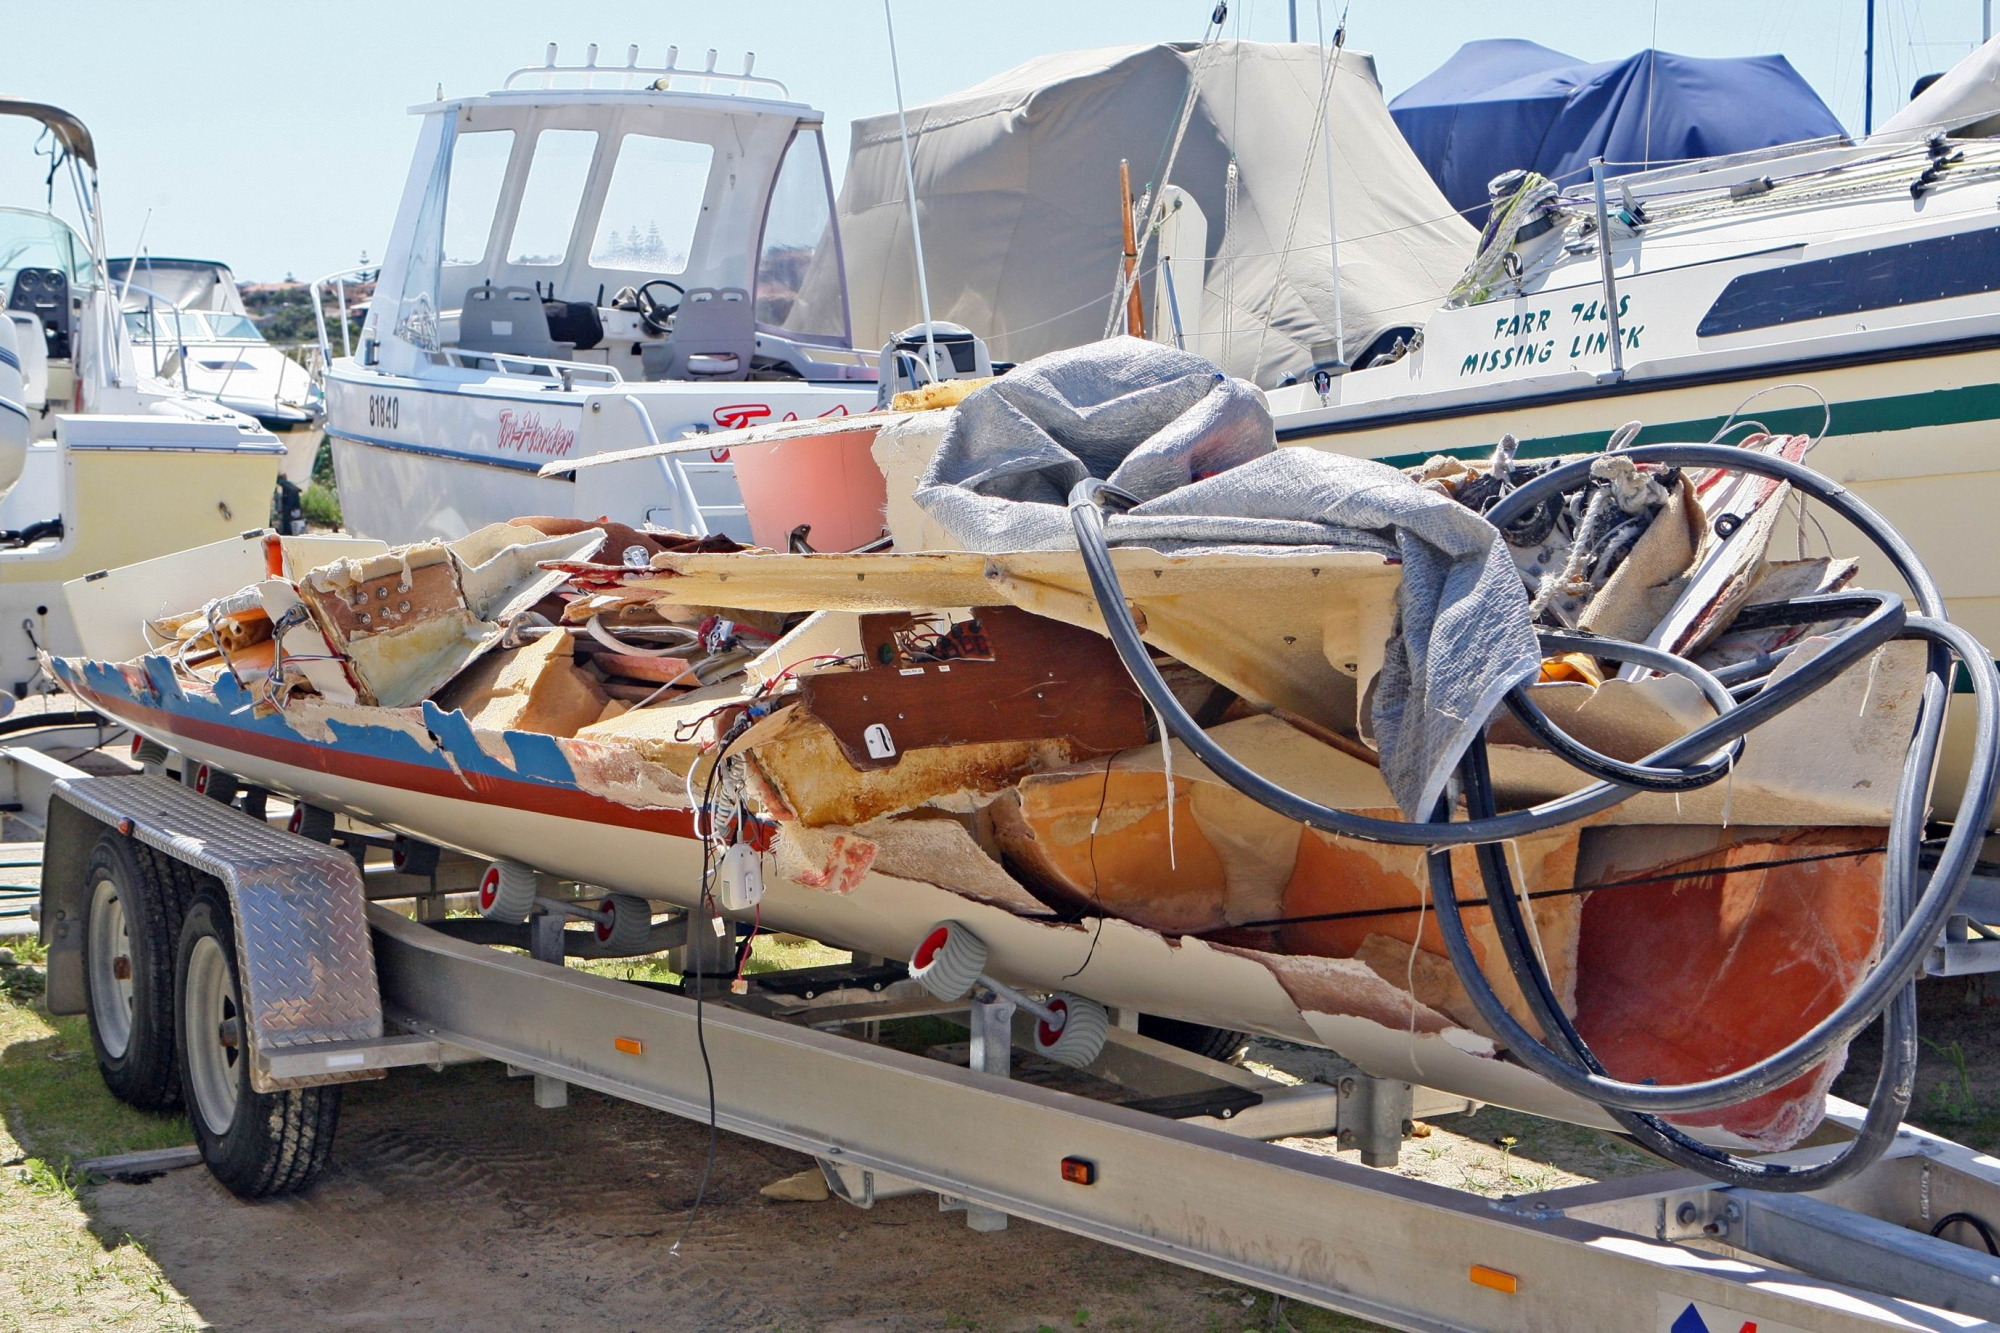 Safarri was smashed to pieces after capsizing as it entered Ocean Reef boat harbour on Saturday.